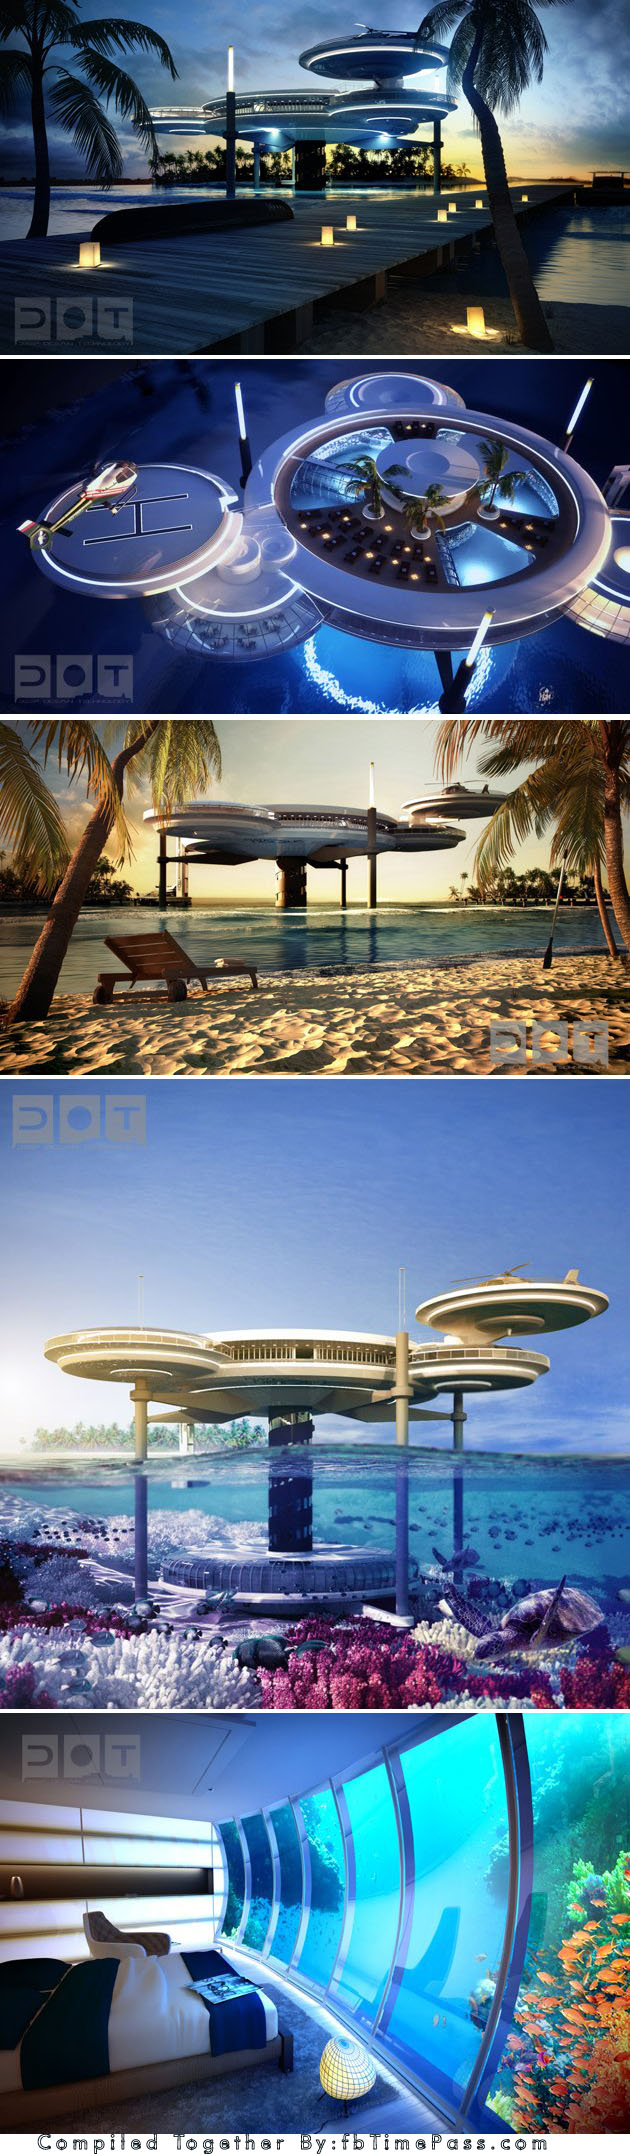 Dubai Reveals Plans For Amazing Underwater Hotel Water Discus Underwater Hotel Will Comprise Two Discs An Underwater And A Underwater Hotel Hotel Underwater